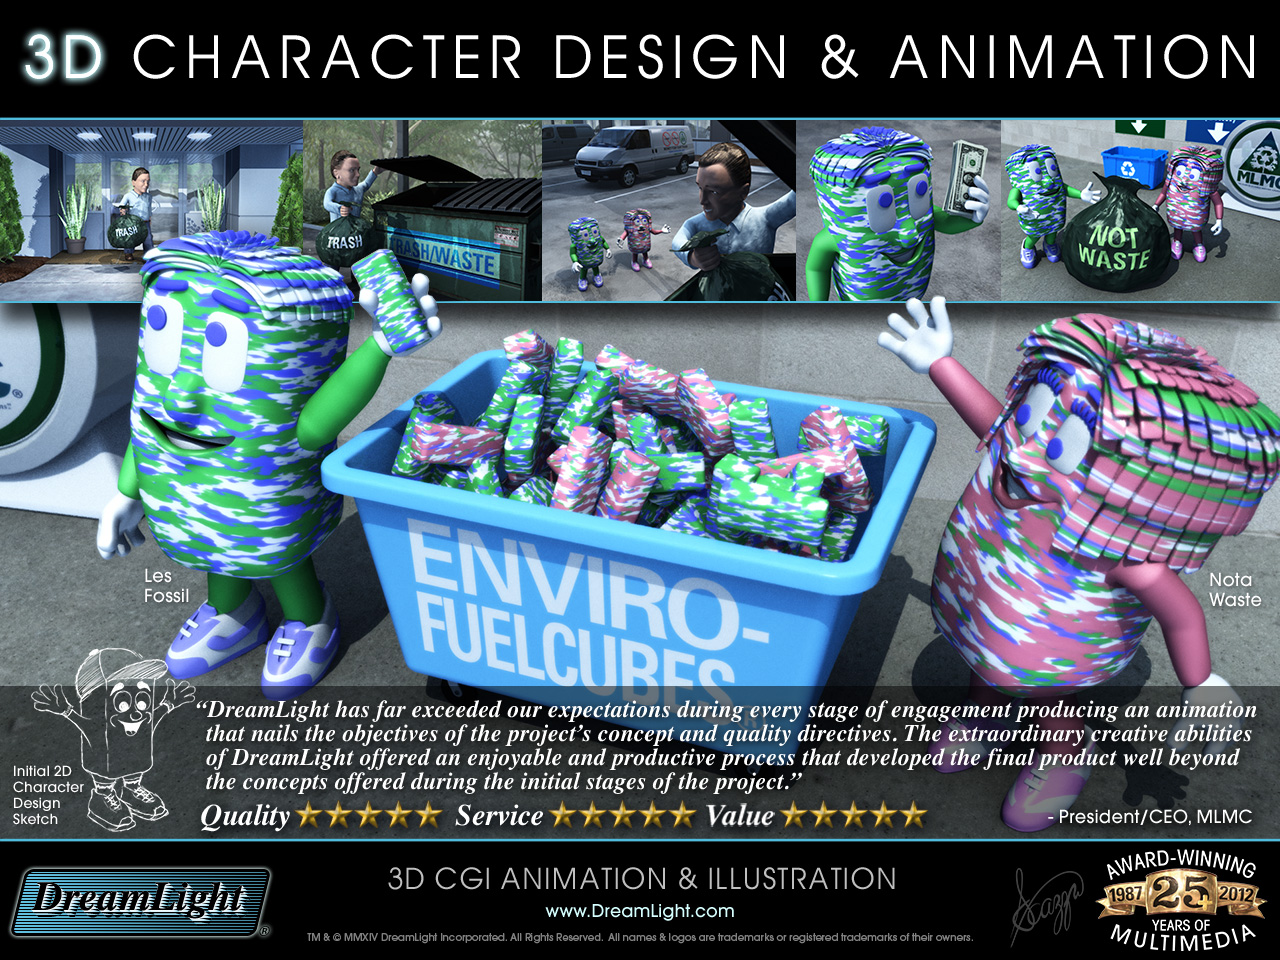 3d Character Animation Sample More Posted To Online